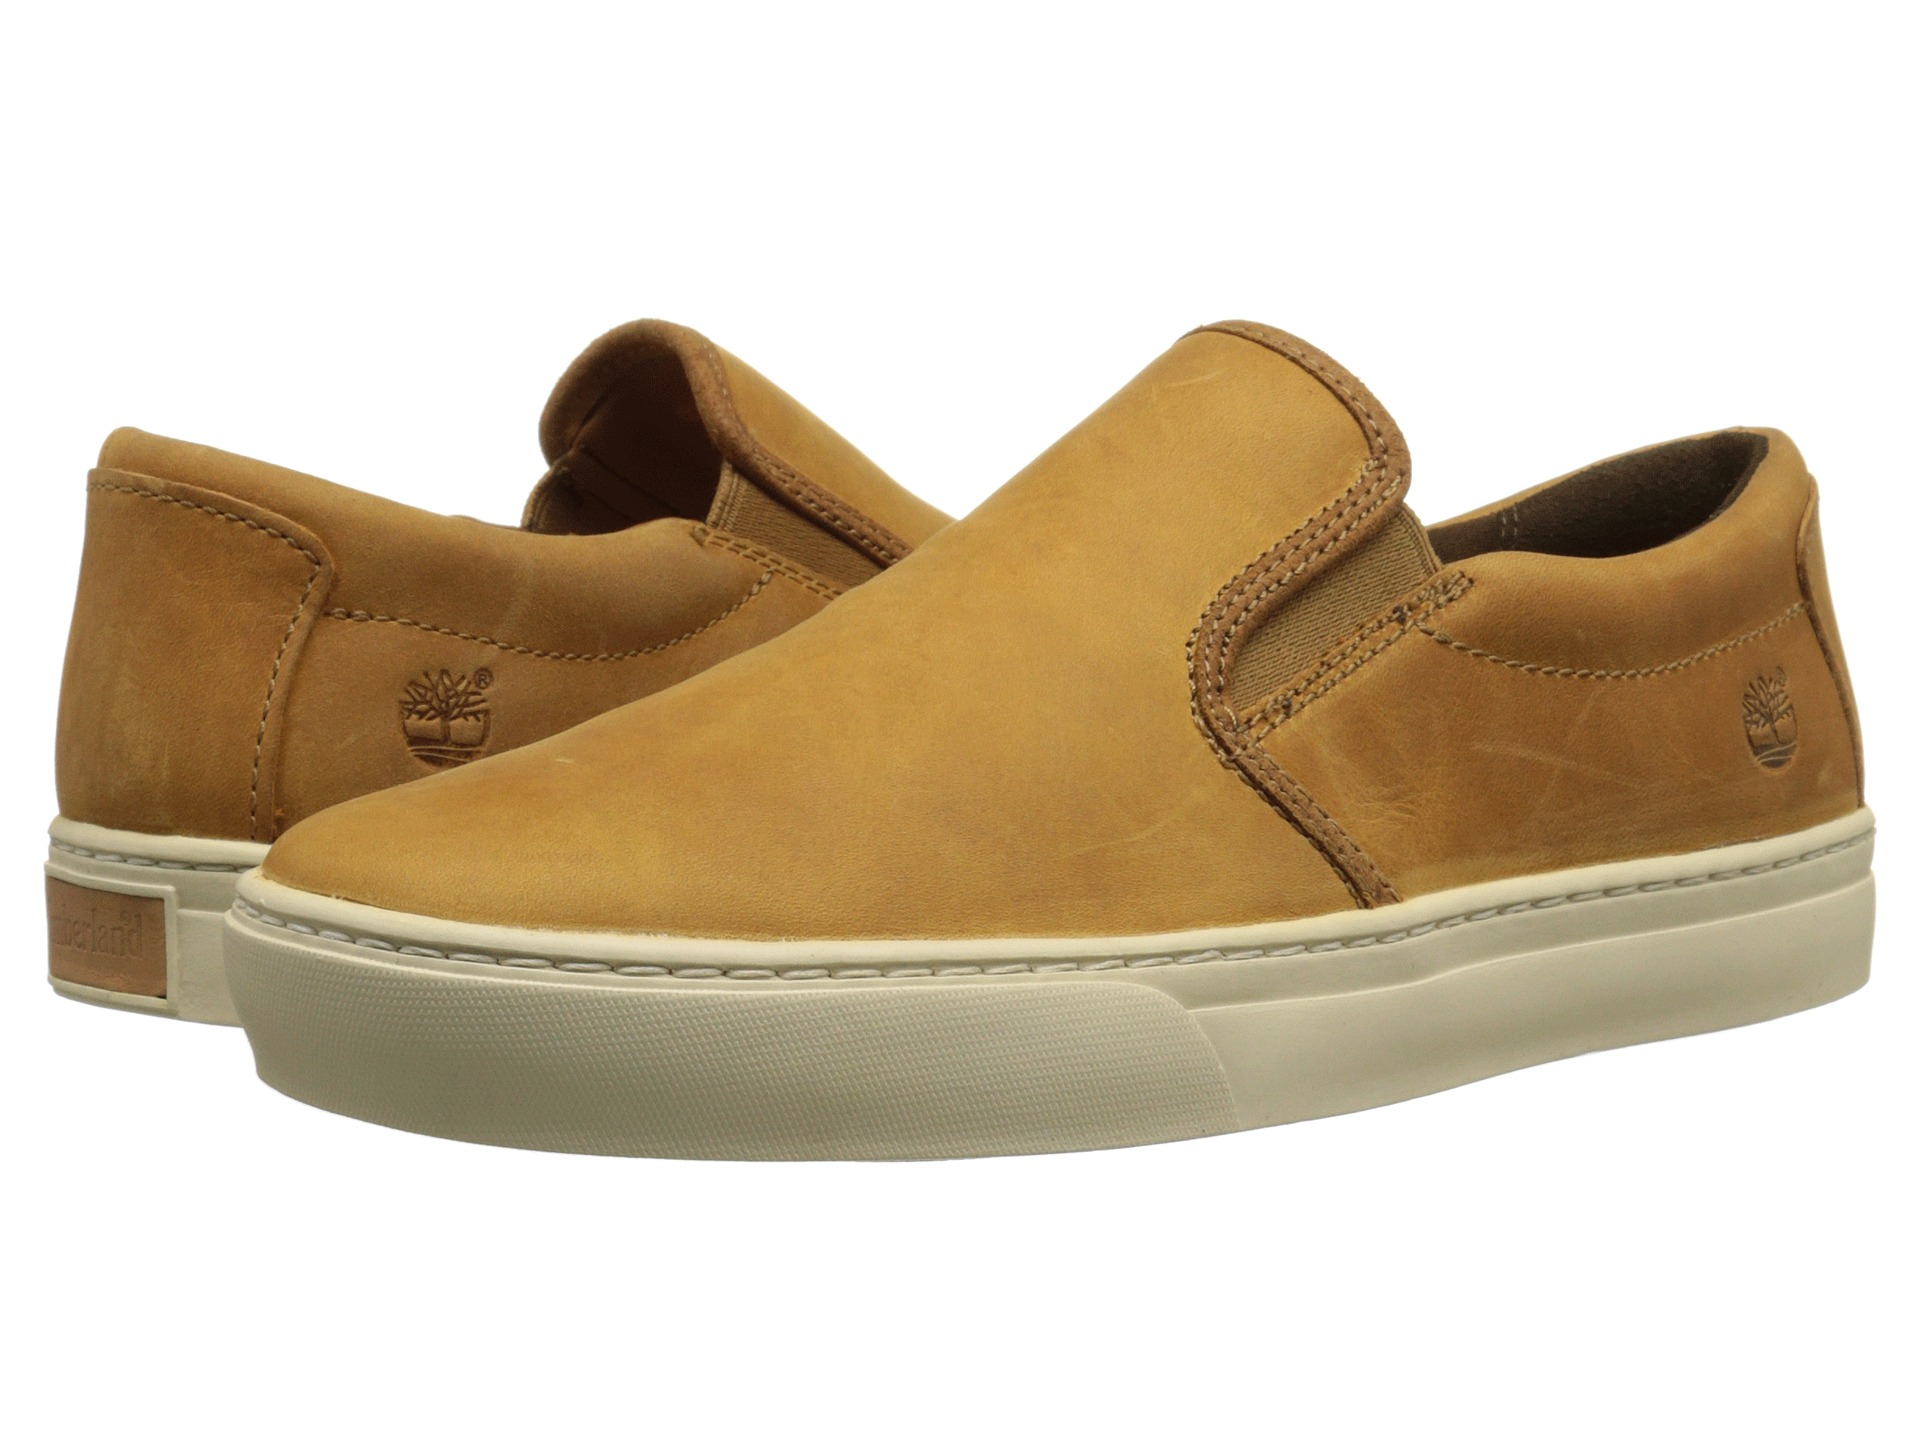 timberland adventure 2.0 slip on